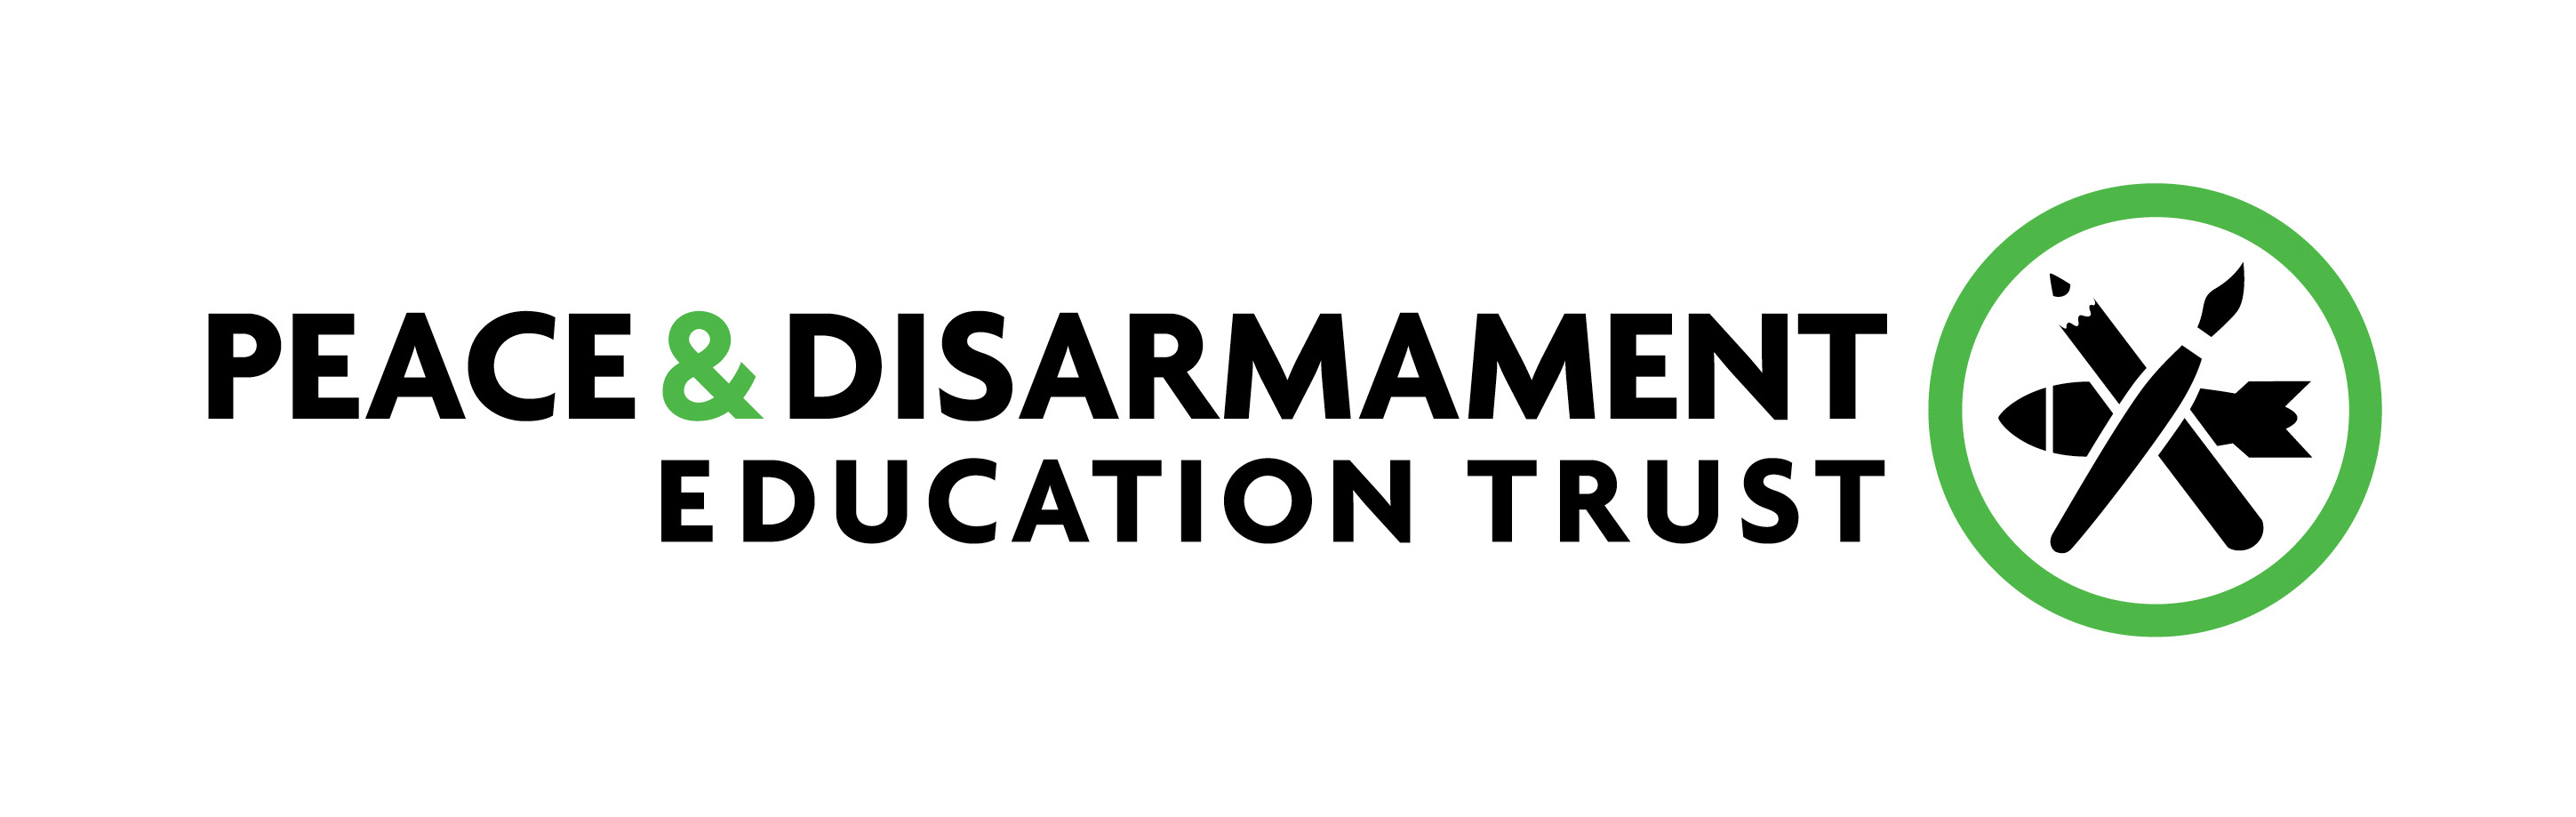 Peace and Disarmament Education Trust logo